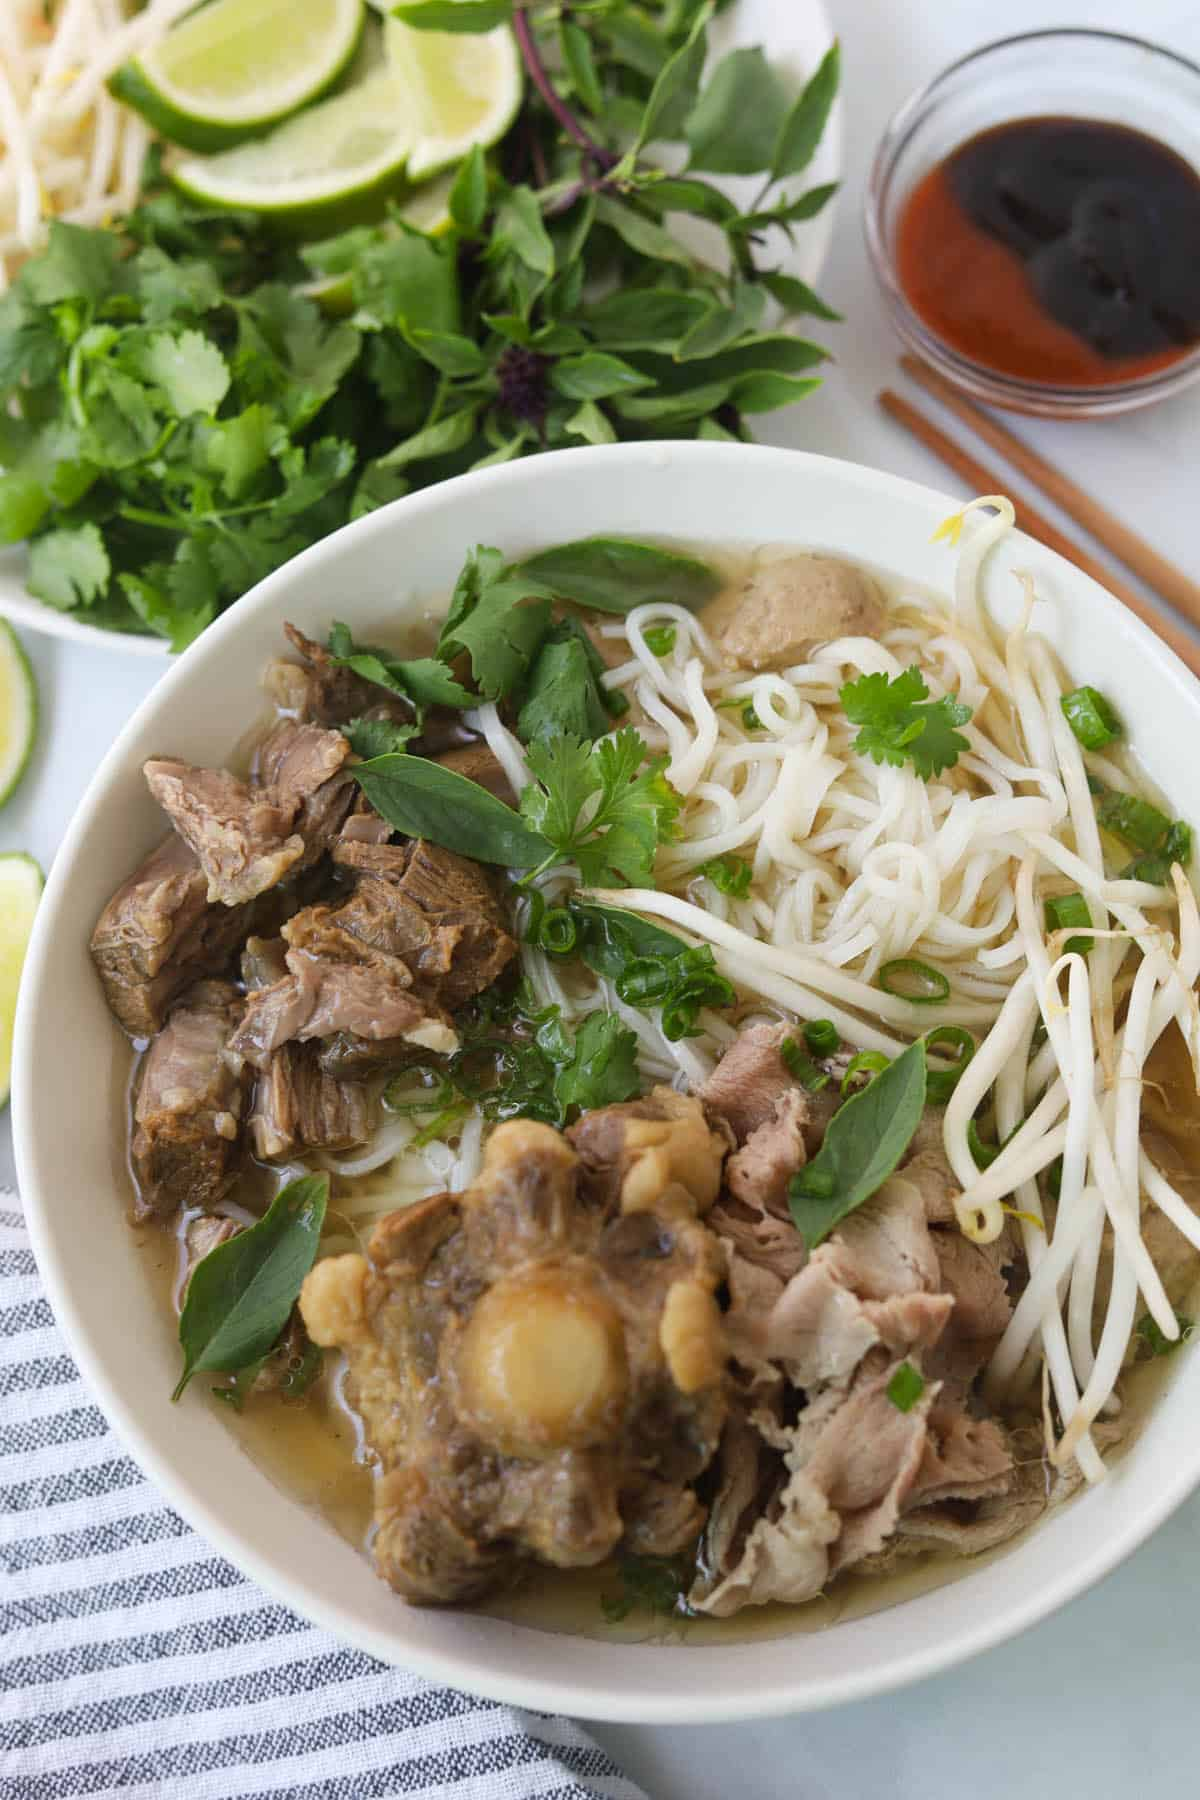 Bowl of rice noodle soup with beef and herbs.